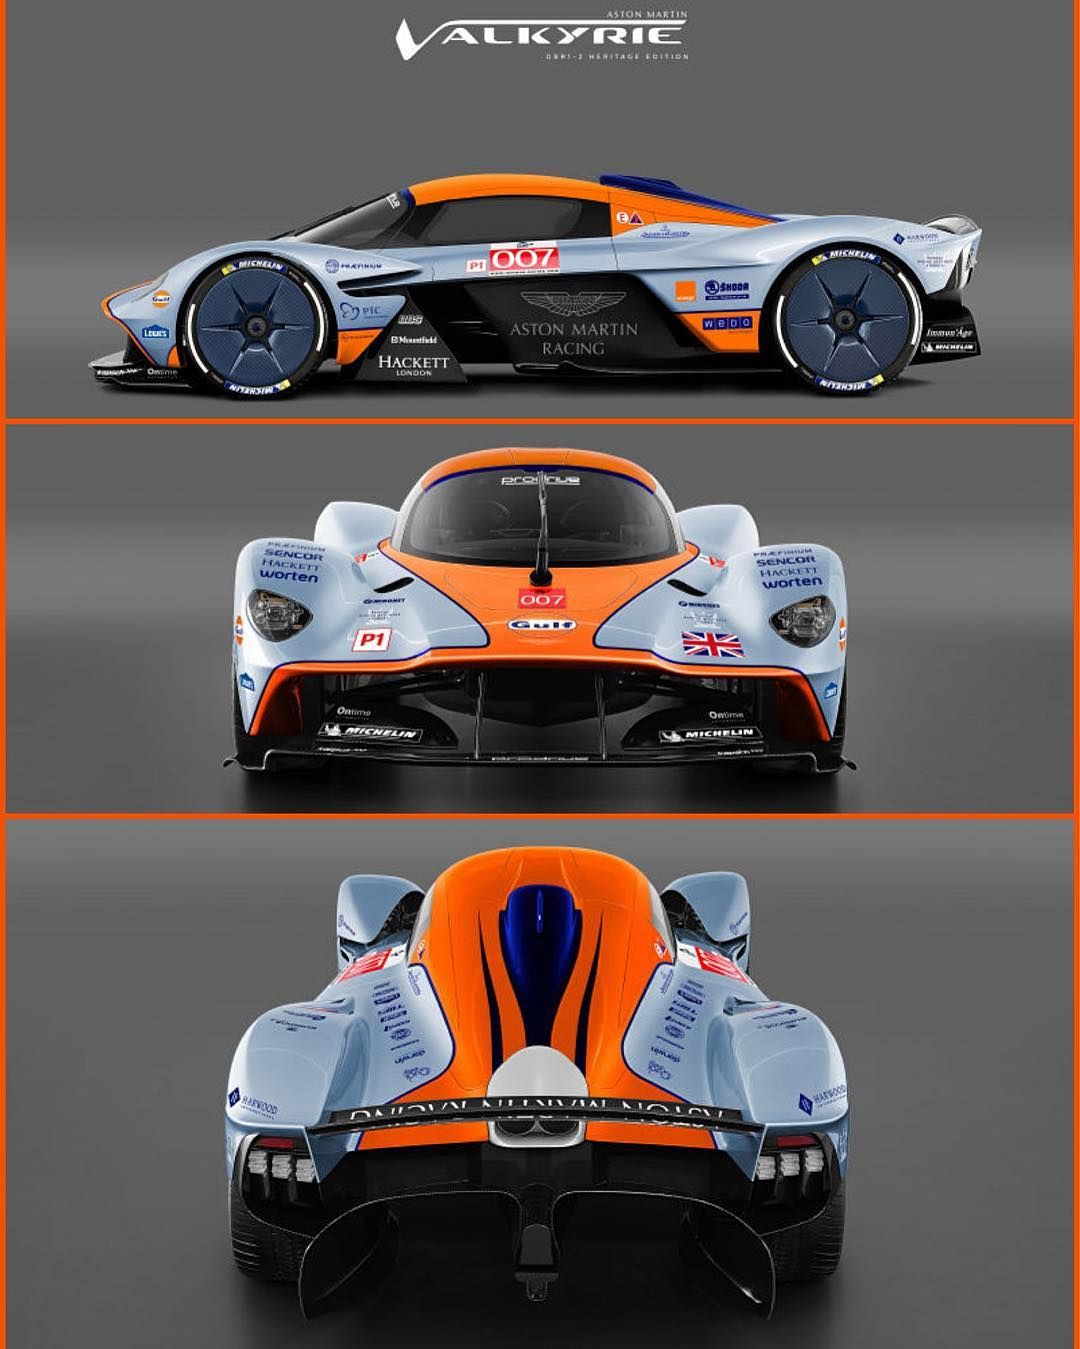 2018 le mans valkyrie gulf livery concept f1 race car pinterest concept cars cars. Black Bedroom Furniture Sets. Home Design Ideas